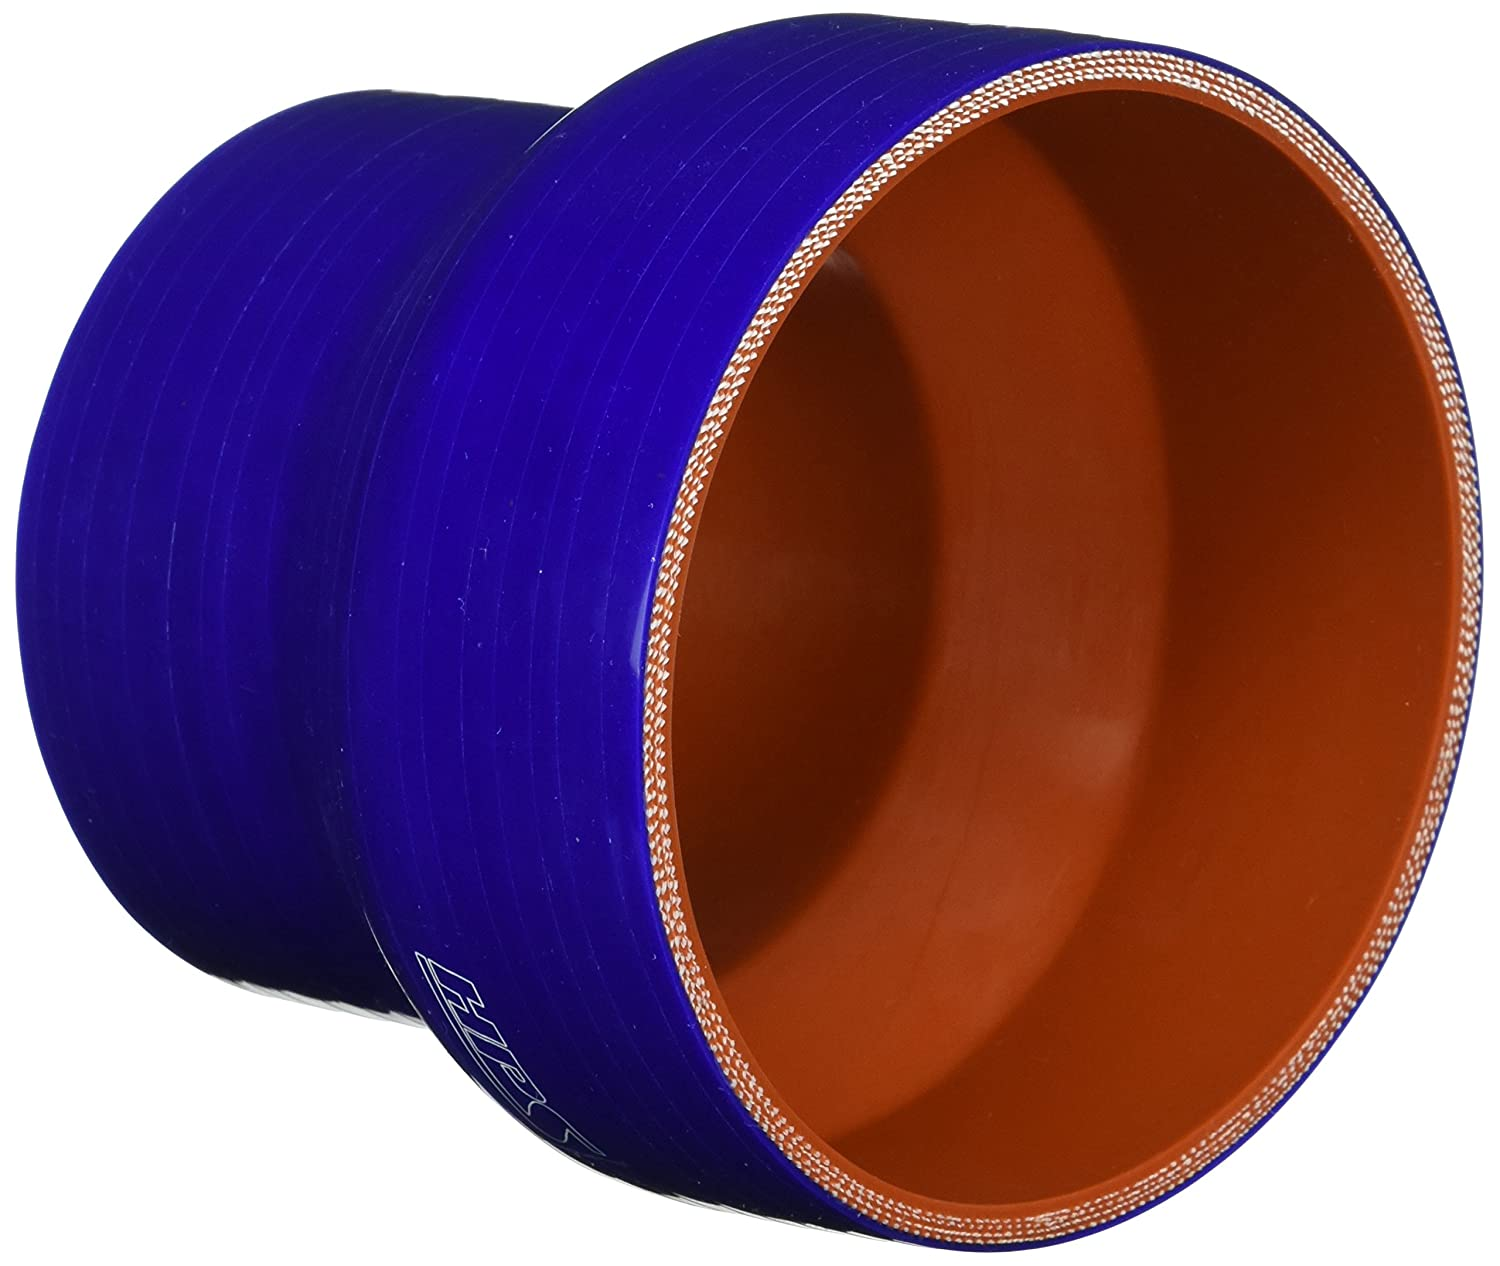 3 Length 40 PSI Maximum Pressure Blue HPS HTSR-375-400-BLUE Silicone High Temperature 4-ply Reinforced Reducer Coupler Hose 3-3//4  4 ID